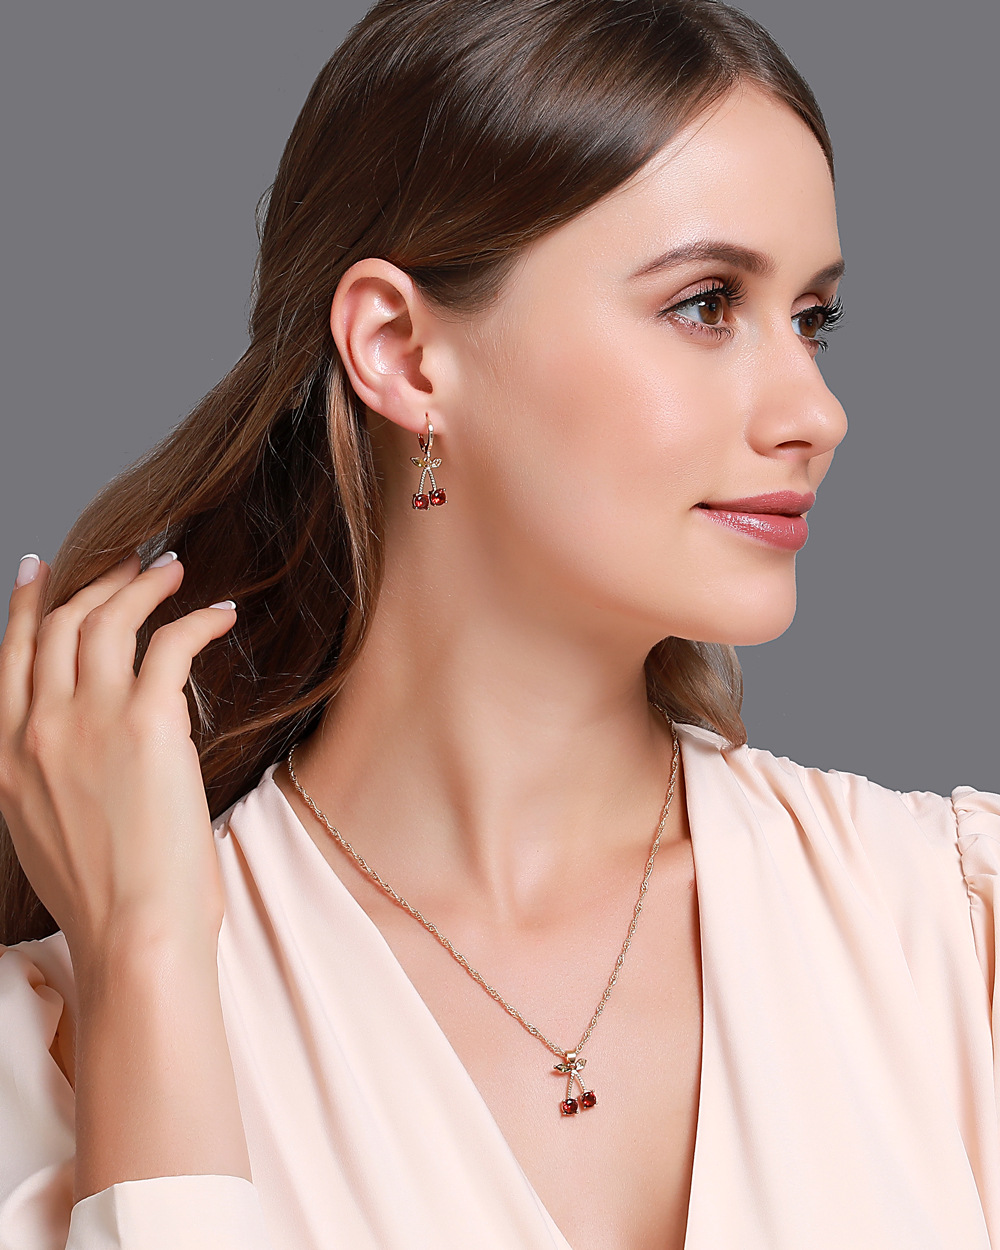 new style hot wedding dinner jewelry temperament pomegranate red cherry necklace girls simple wild crystal earrings wholesale nihaojewelry NHDP220004